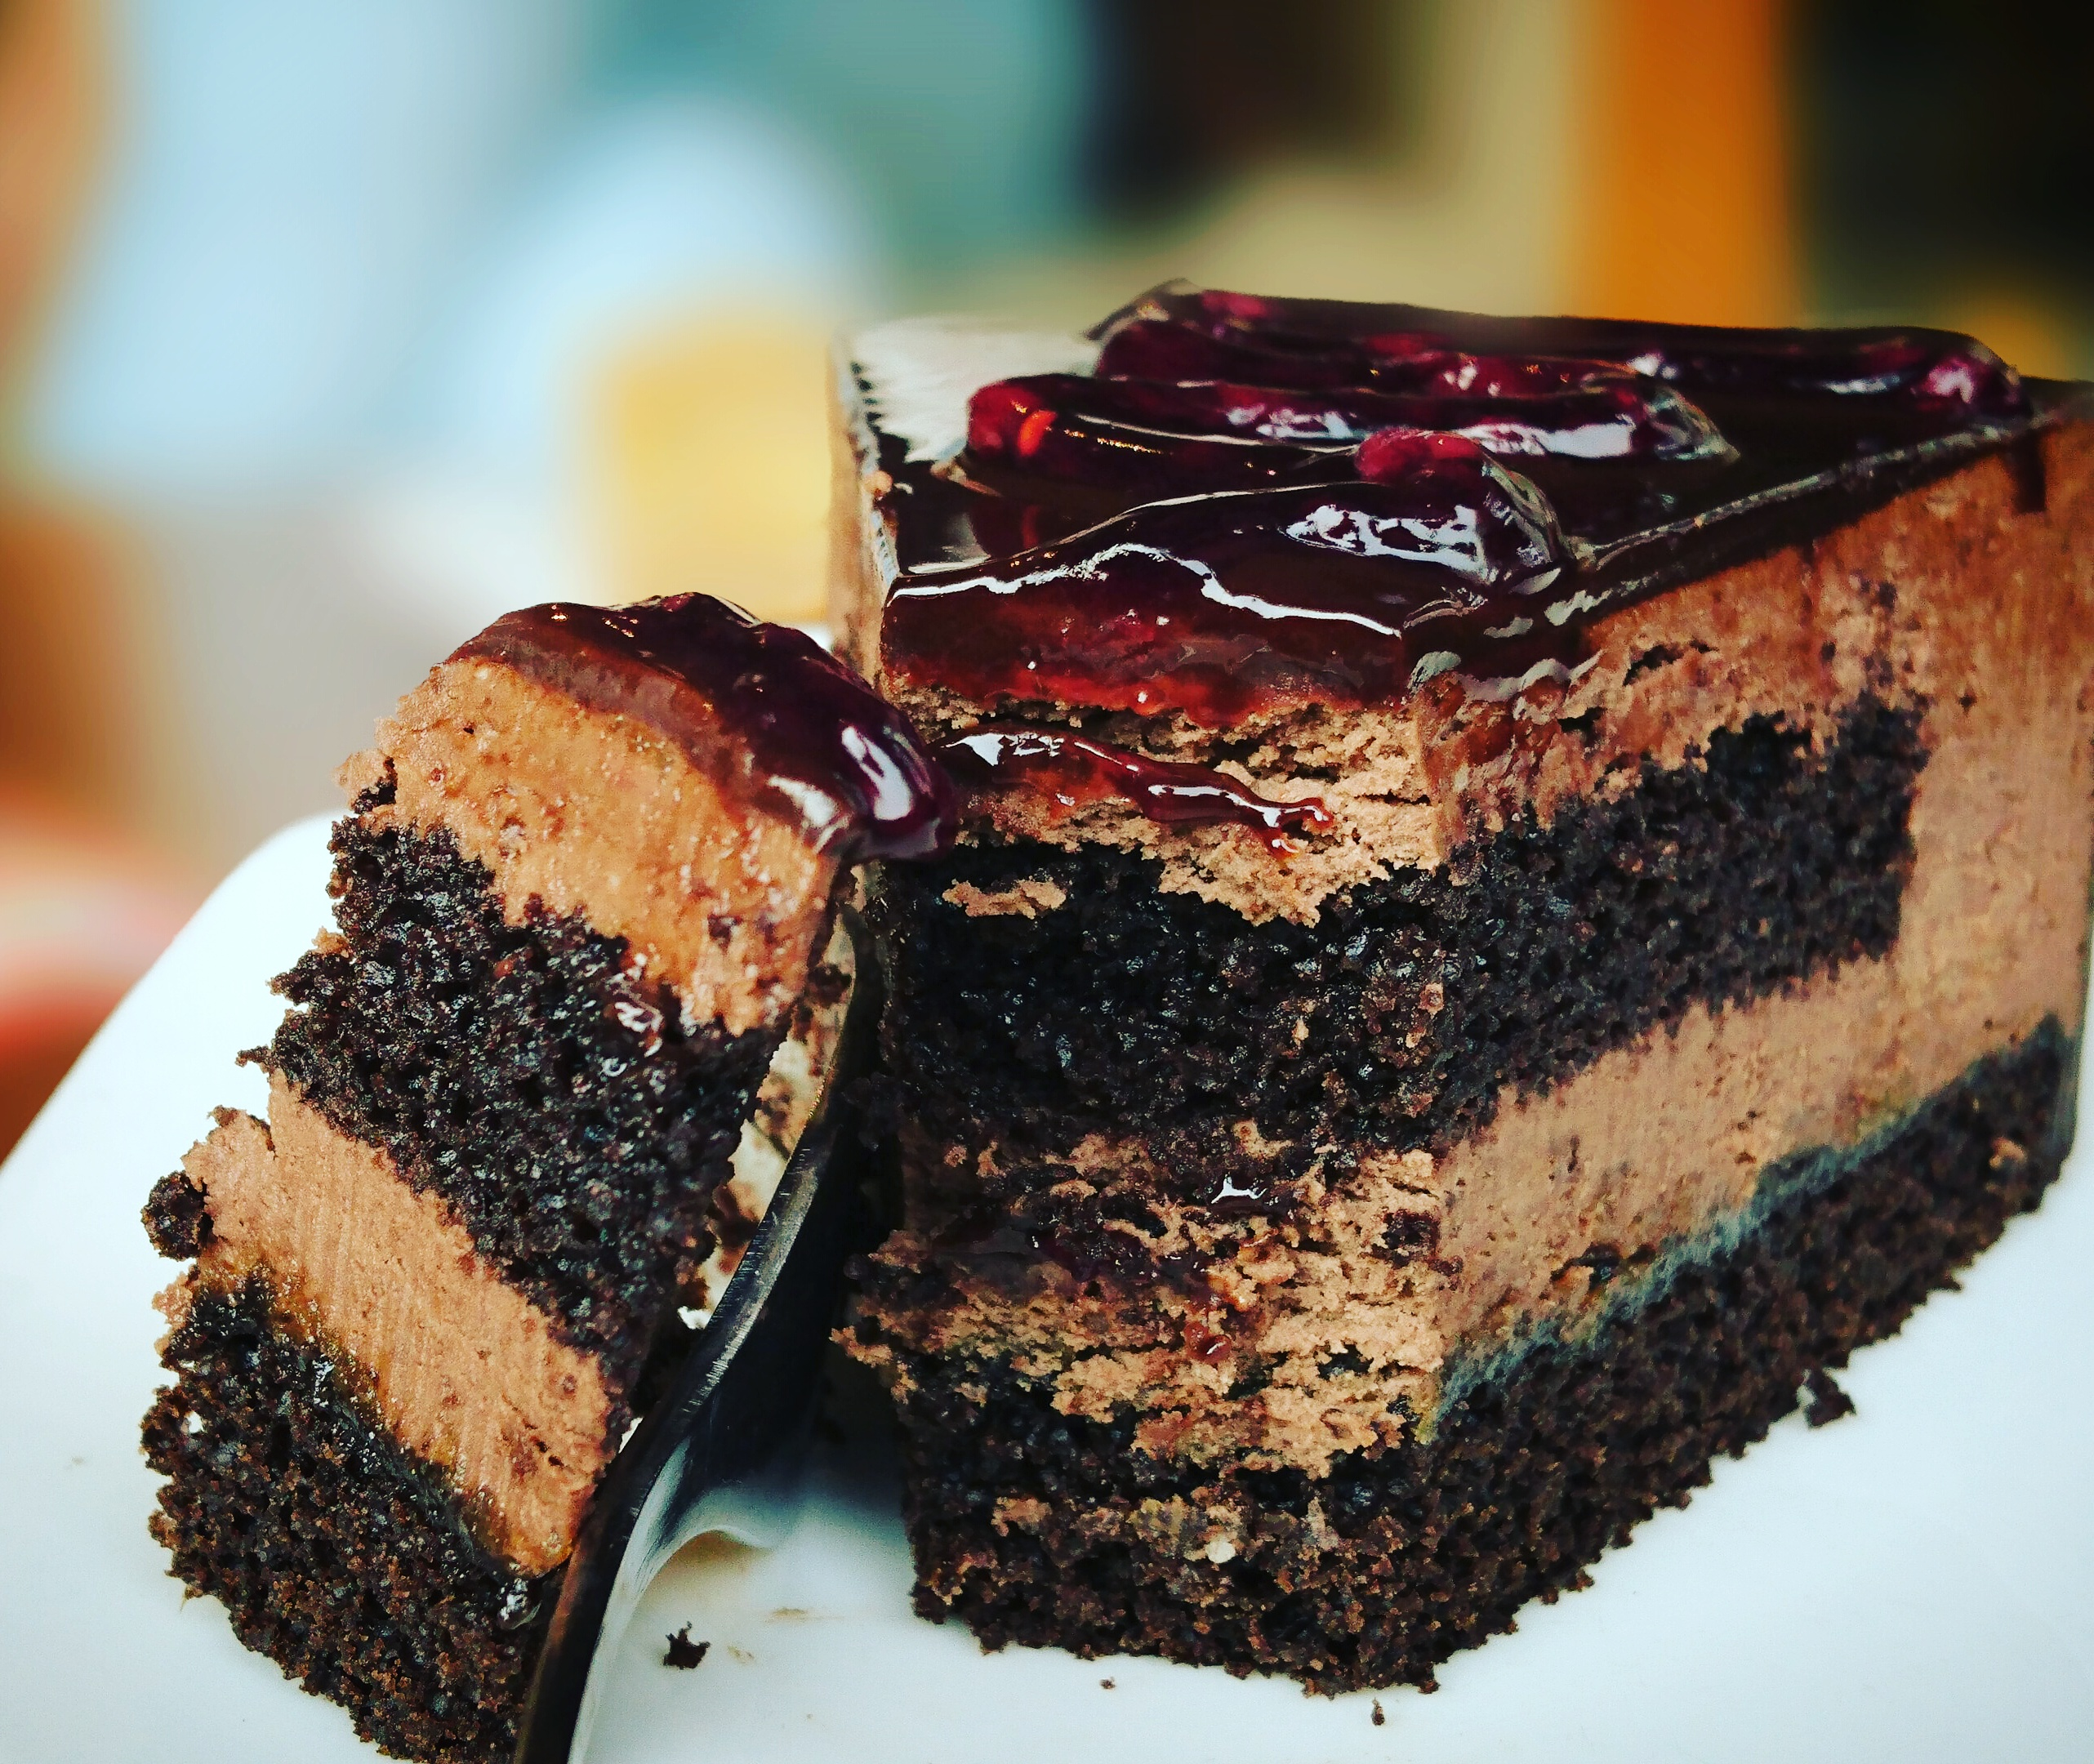 100 Yummy Chocolate Pictures Pexels Free Stock Photos